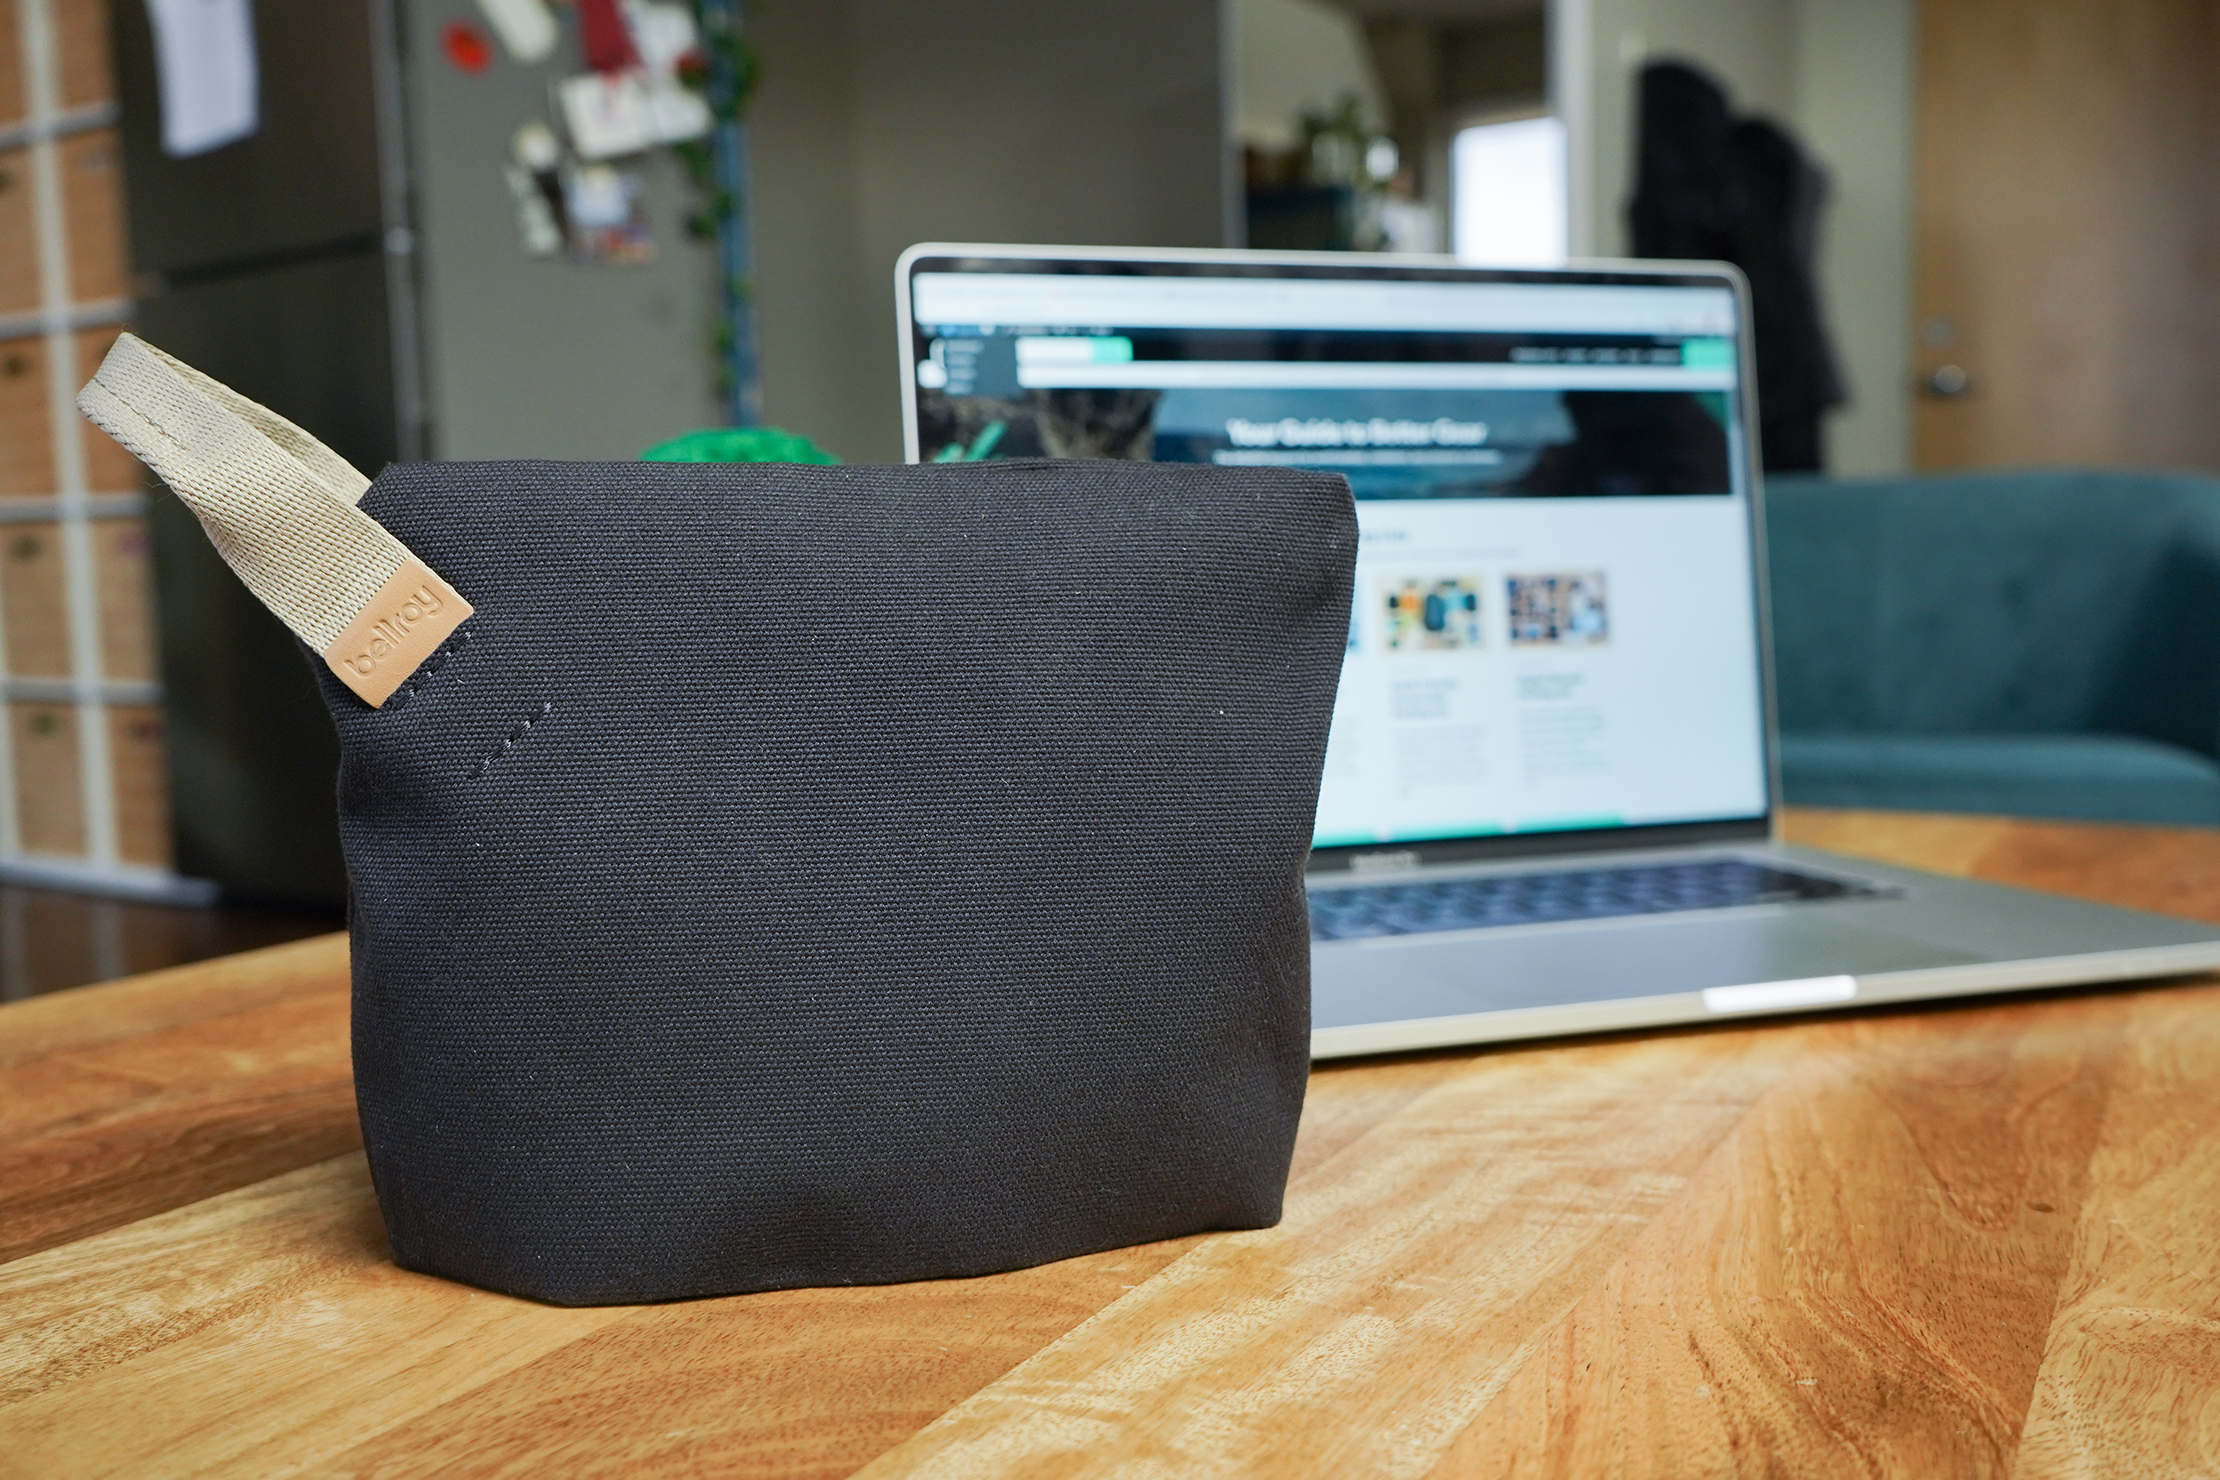 Bellroy Standing Pouch | It's tall, but slim from the sides